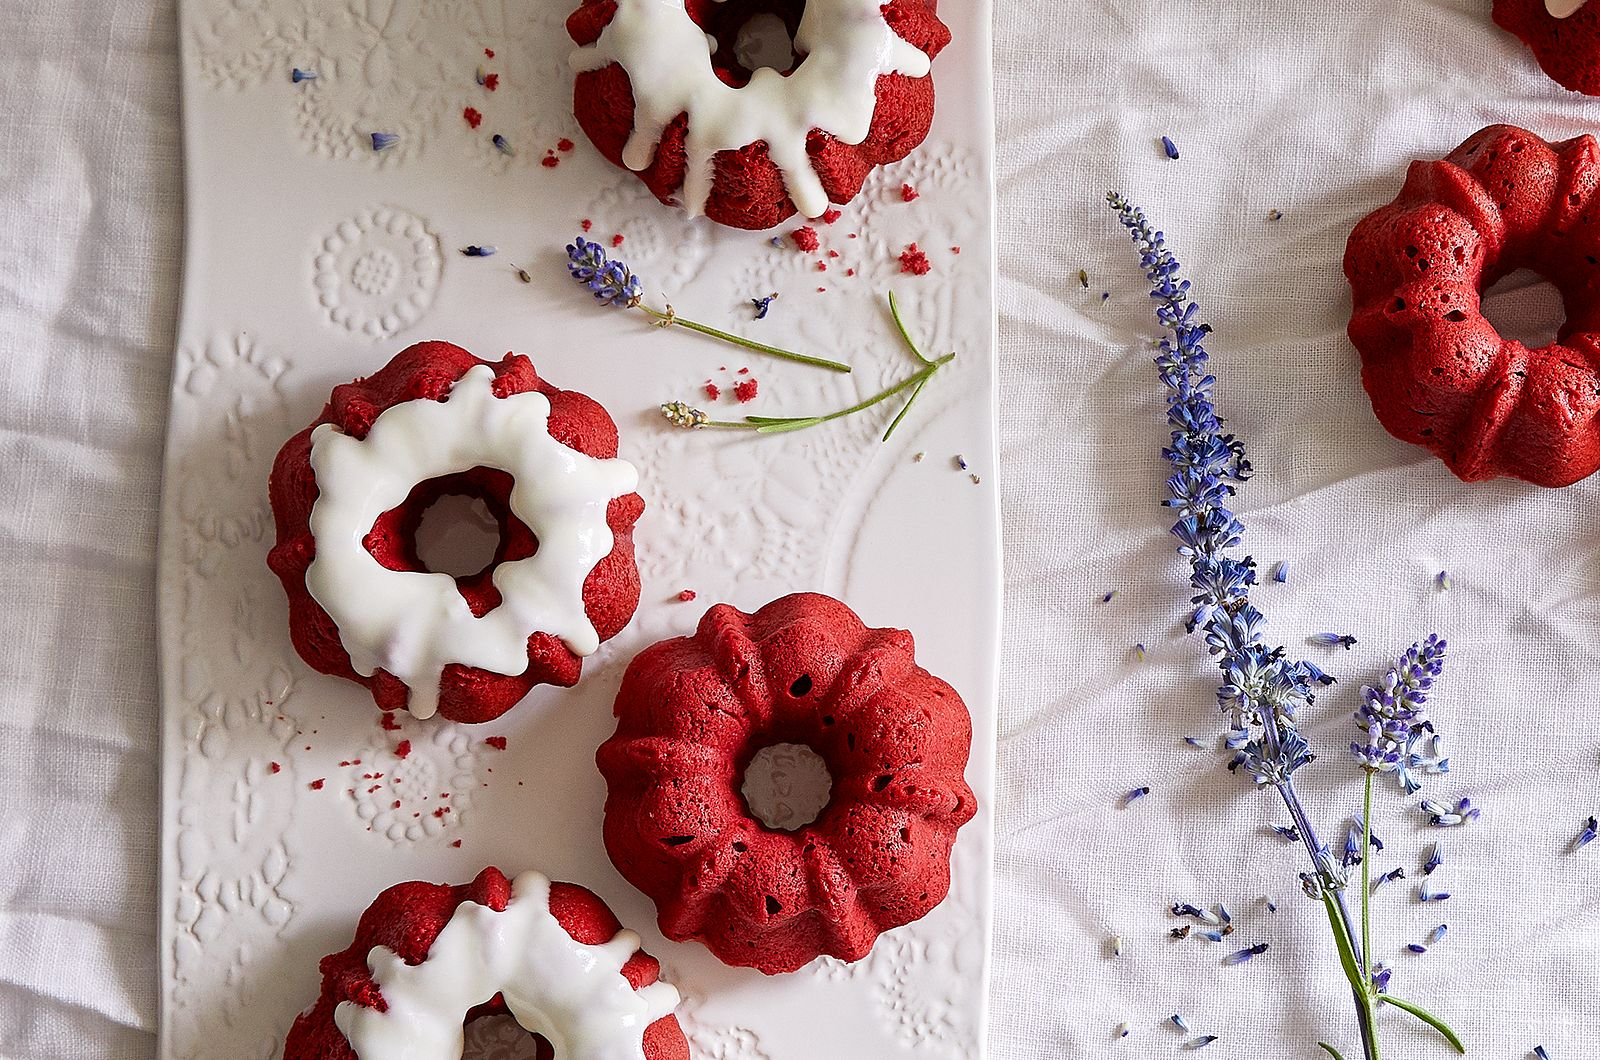 How to Plan, Prep, and Give Edible Gifts During the Holidays